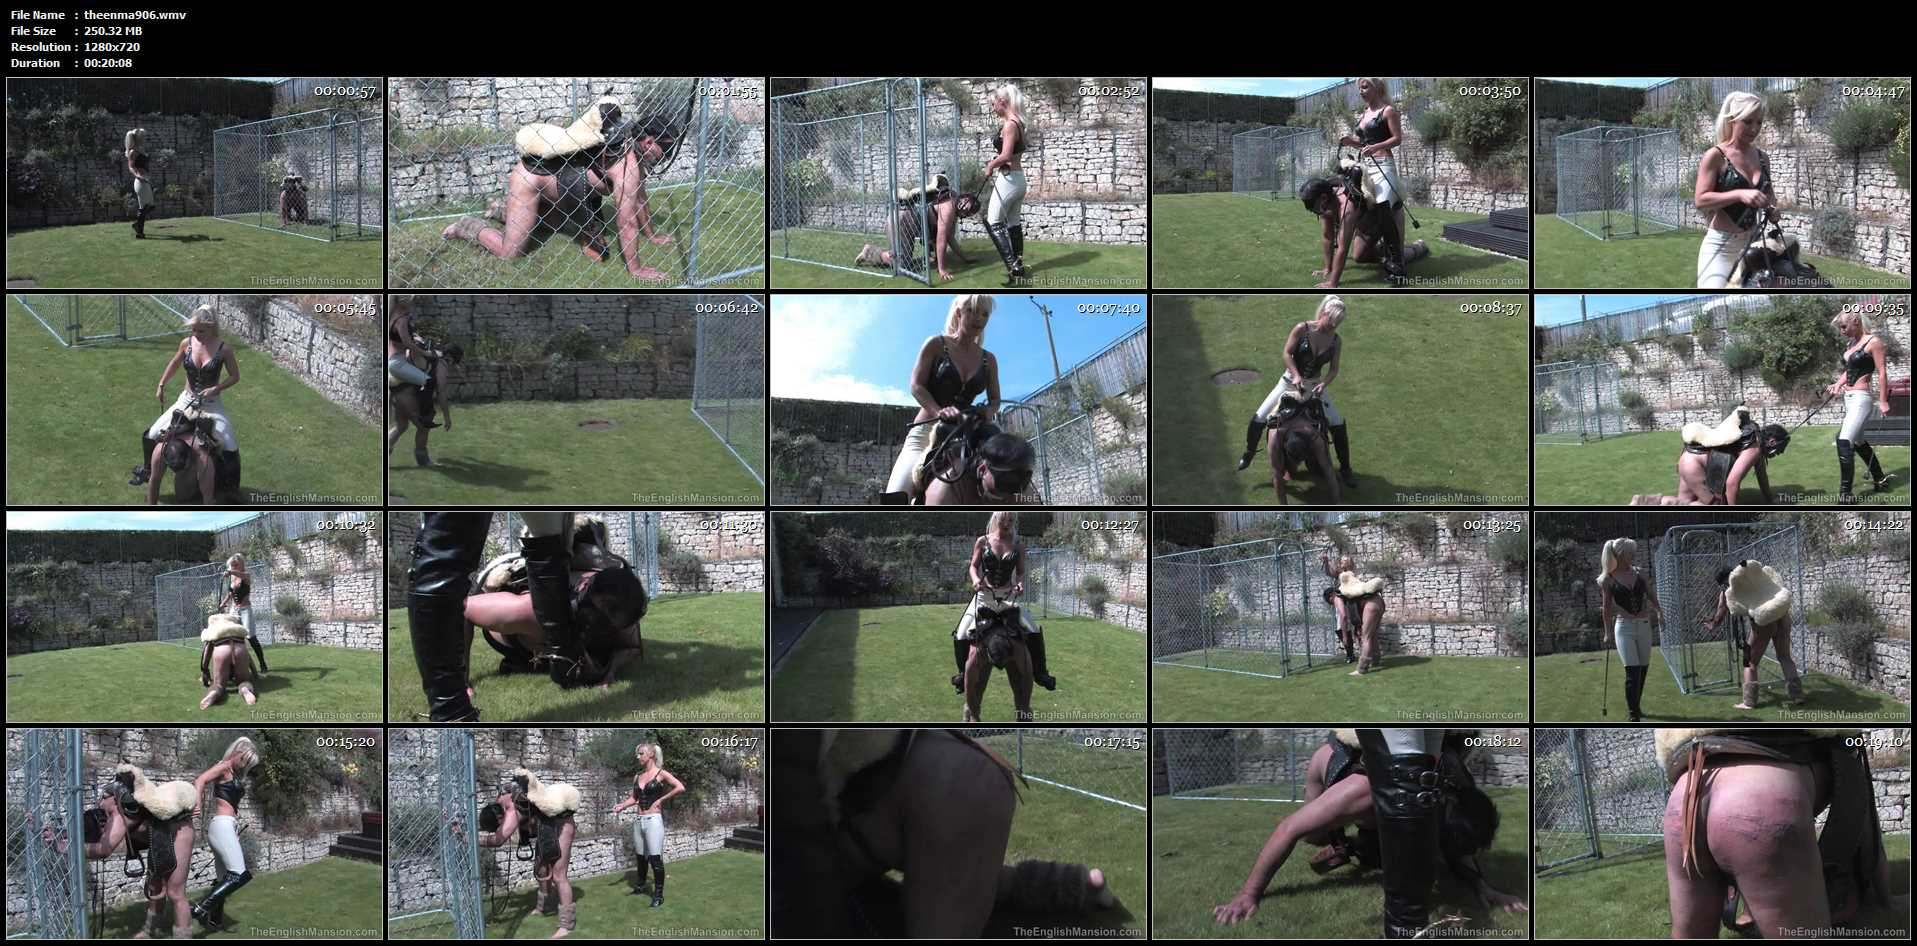 Mistress Vixen In Scene: Vixen's Pony Ride - THEENGLISHMANSION - HD/720p/WMV